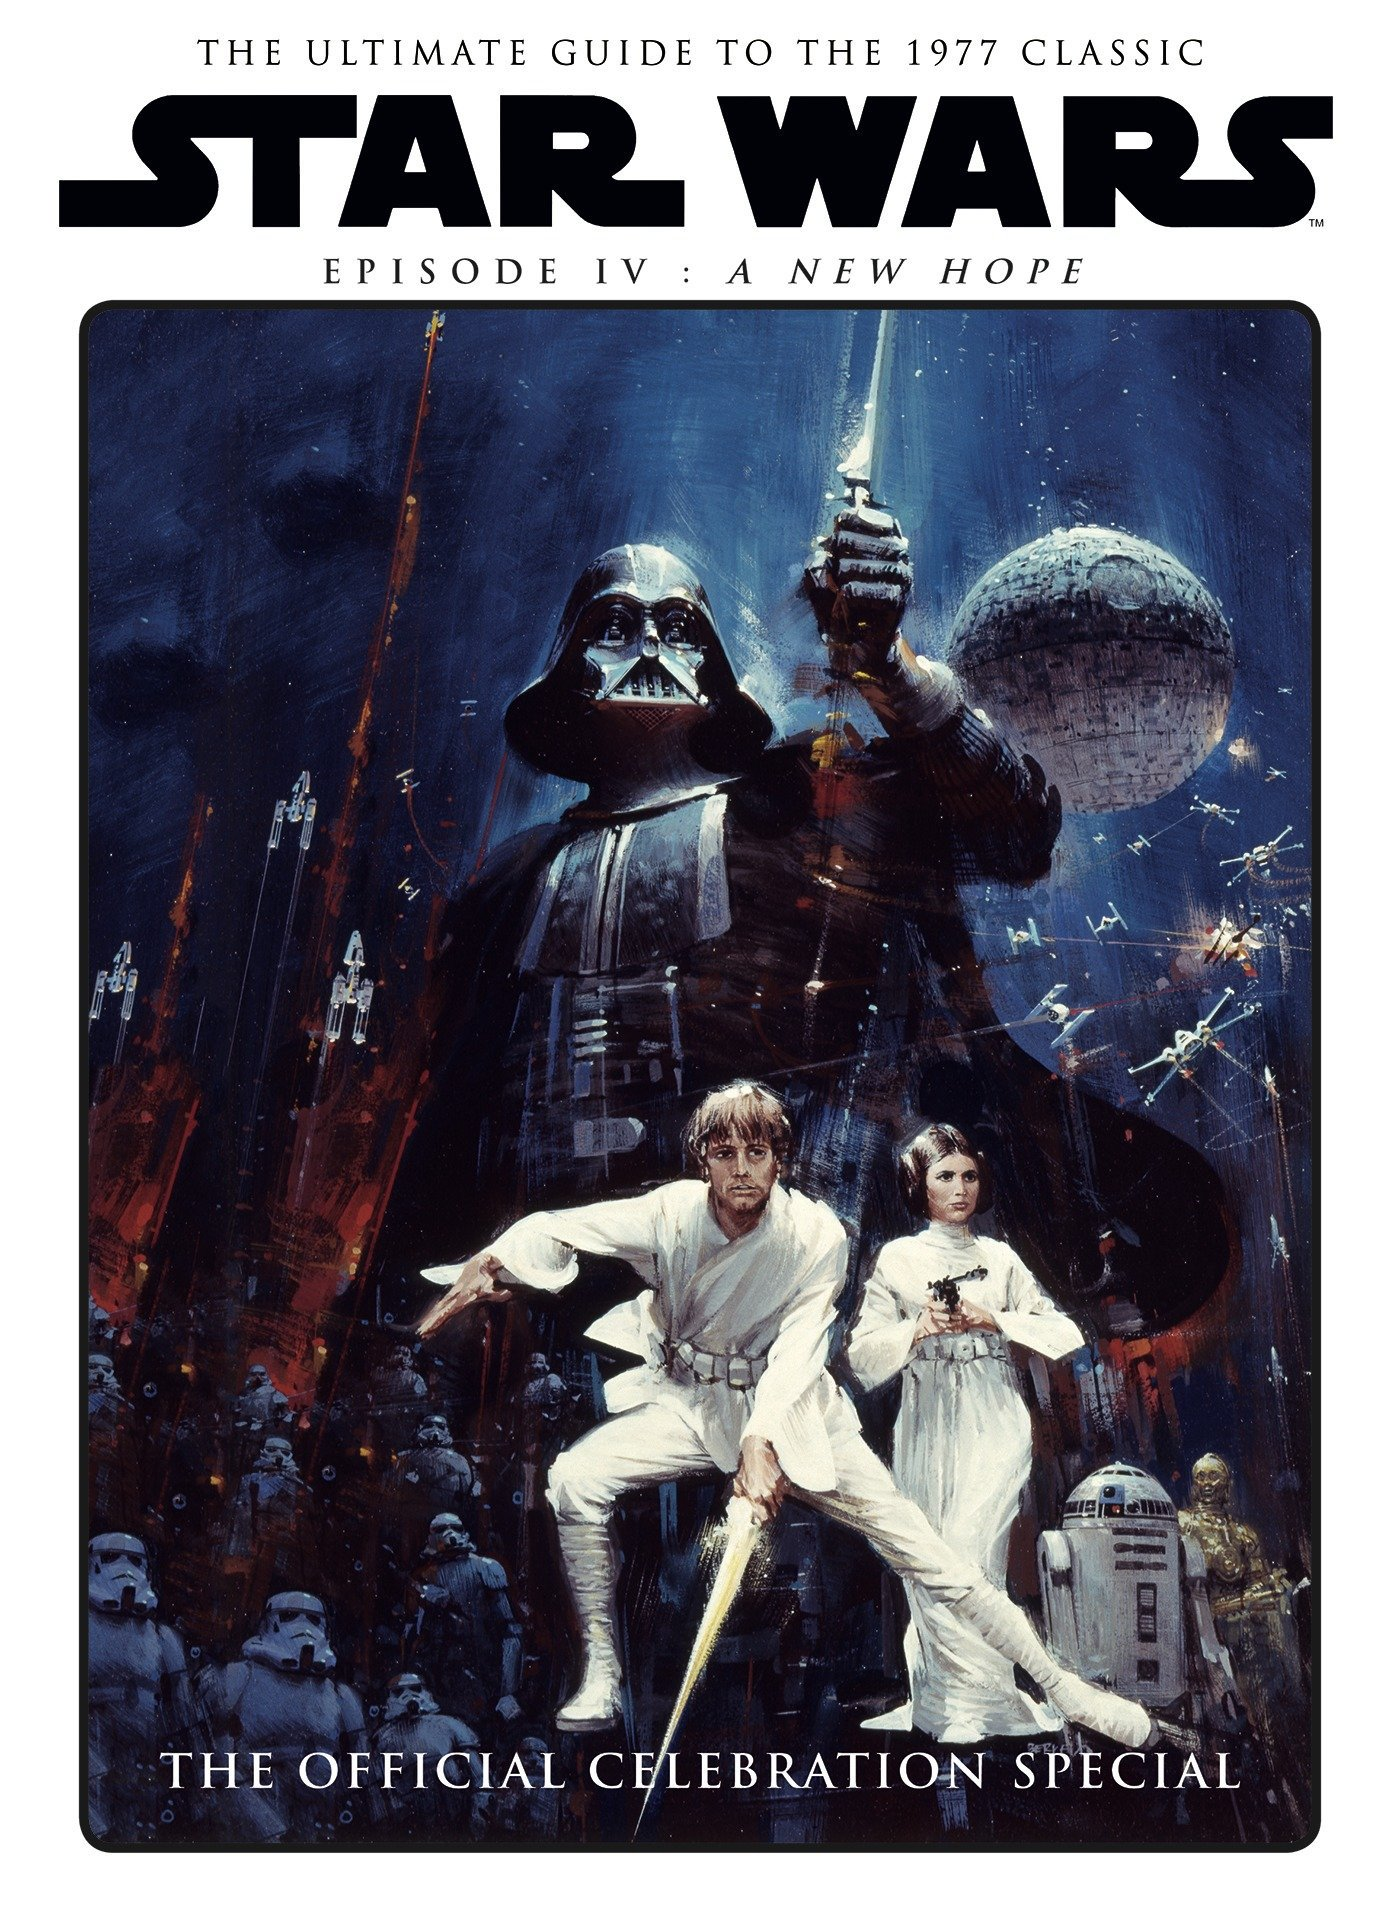 Star Wars A New Hope Official Celebration Special Titan 9781785864605 Amazon Com Books